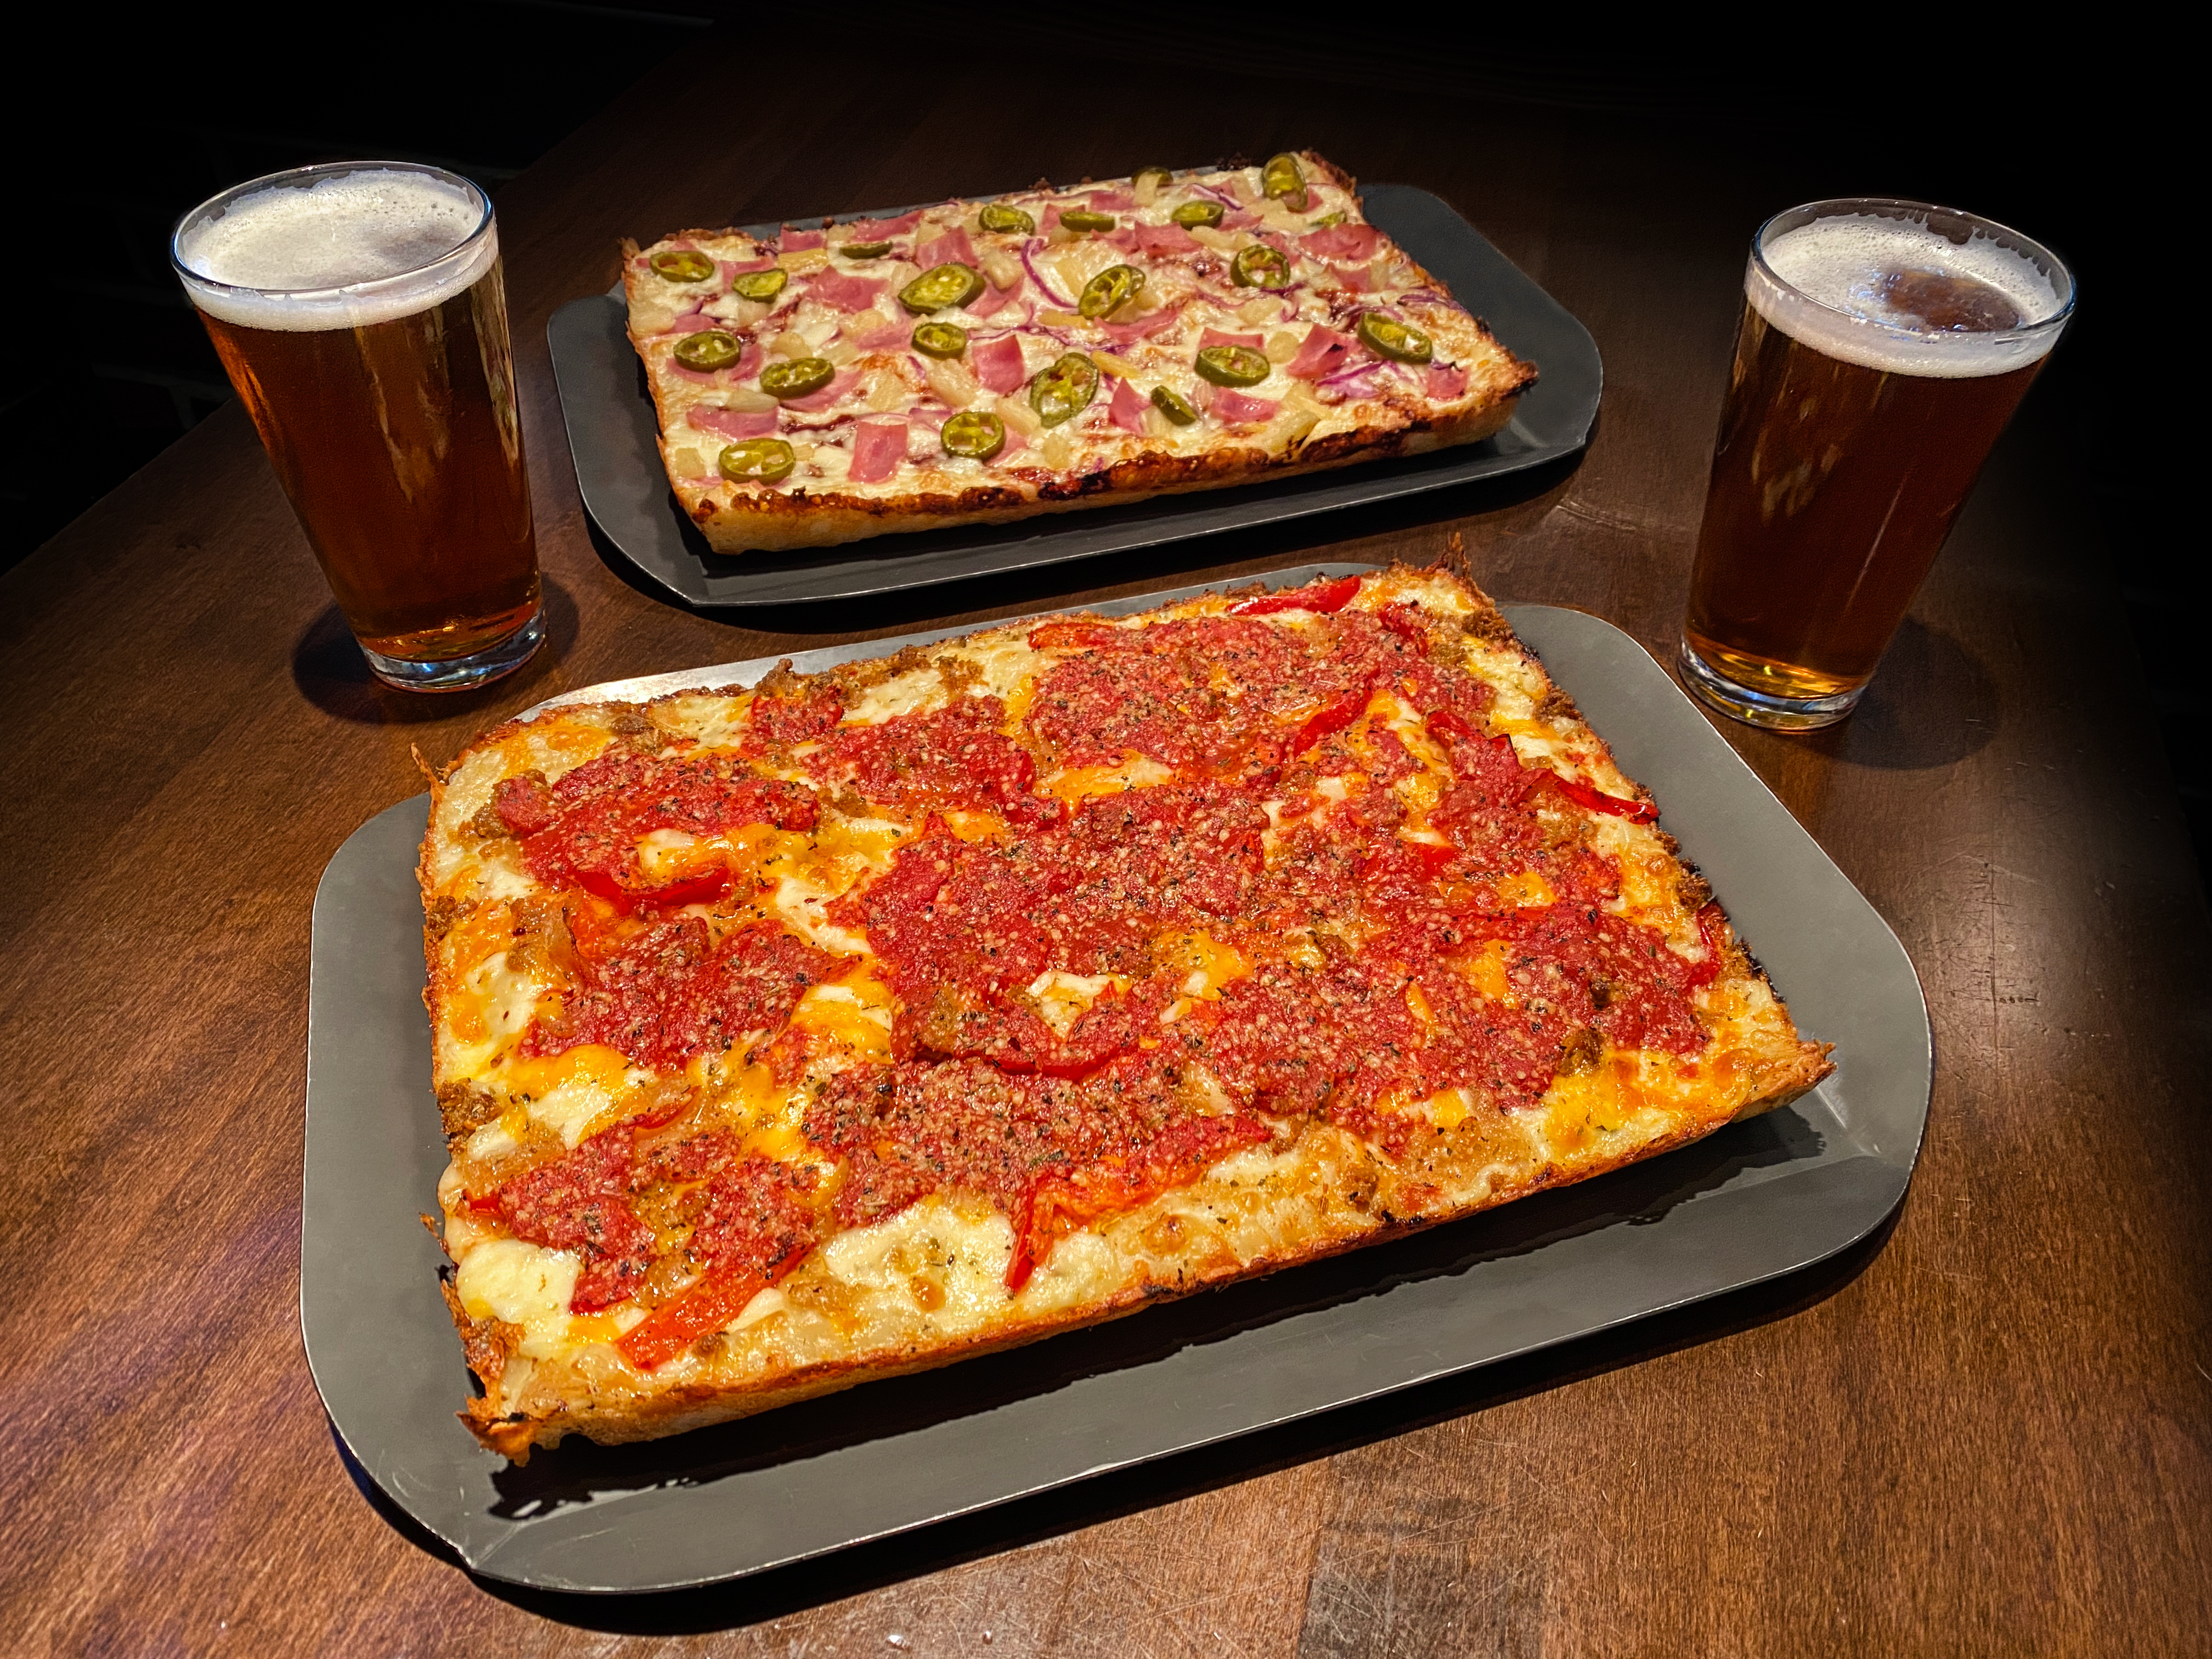 Two square pizzas (Oktoberfest and Hawaiian) are flanked by two glasses of dark beer